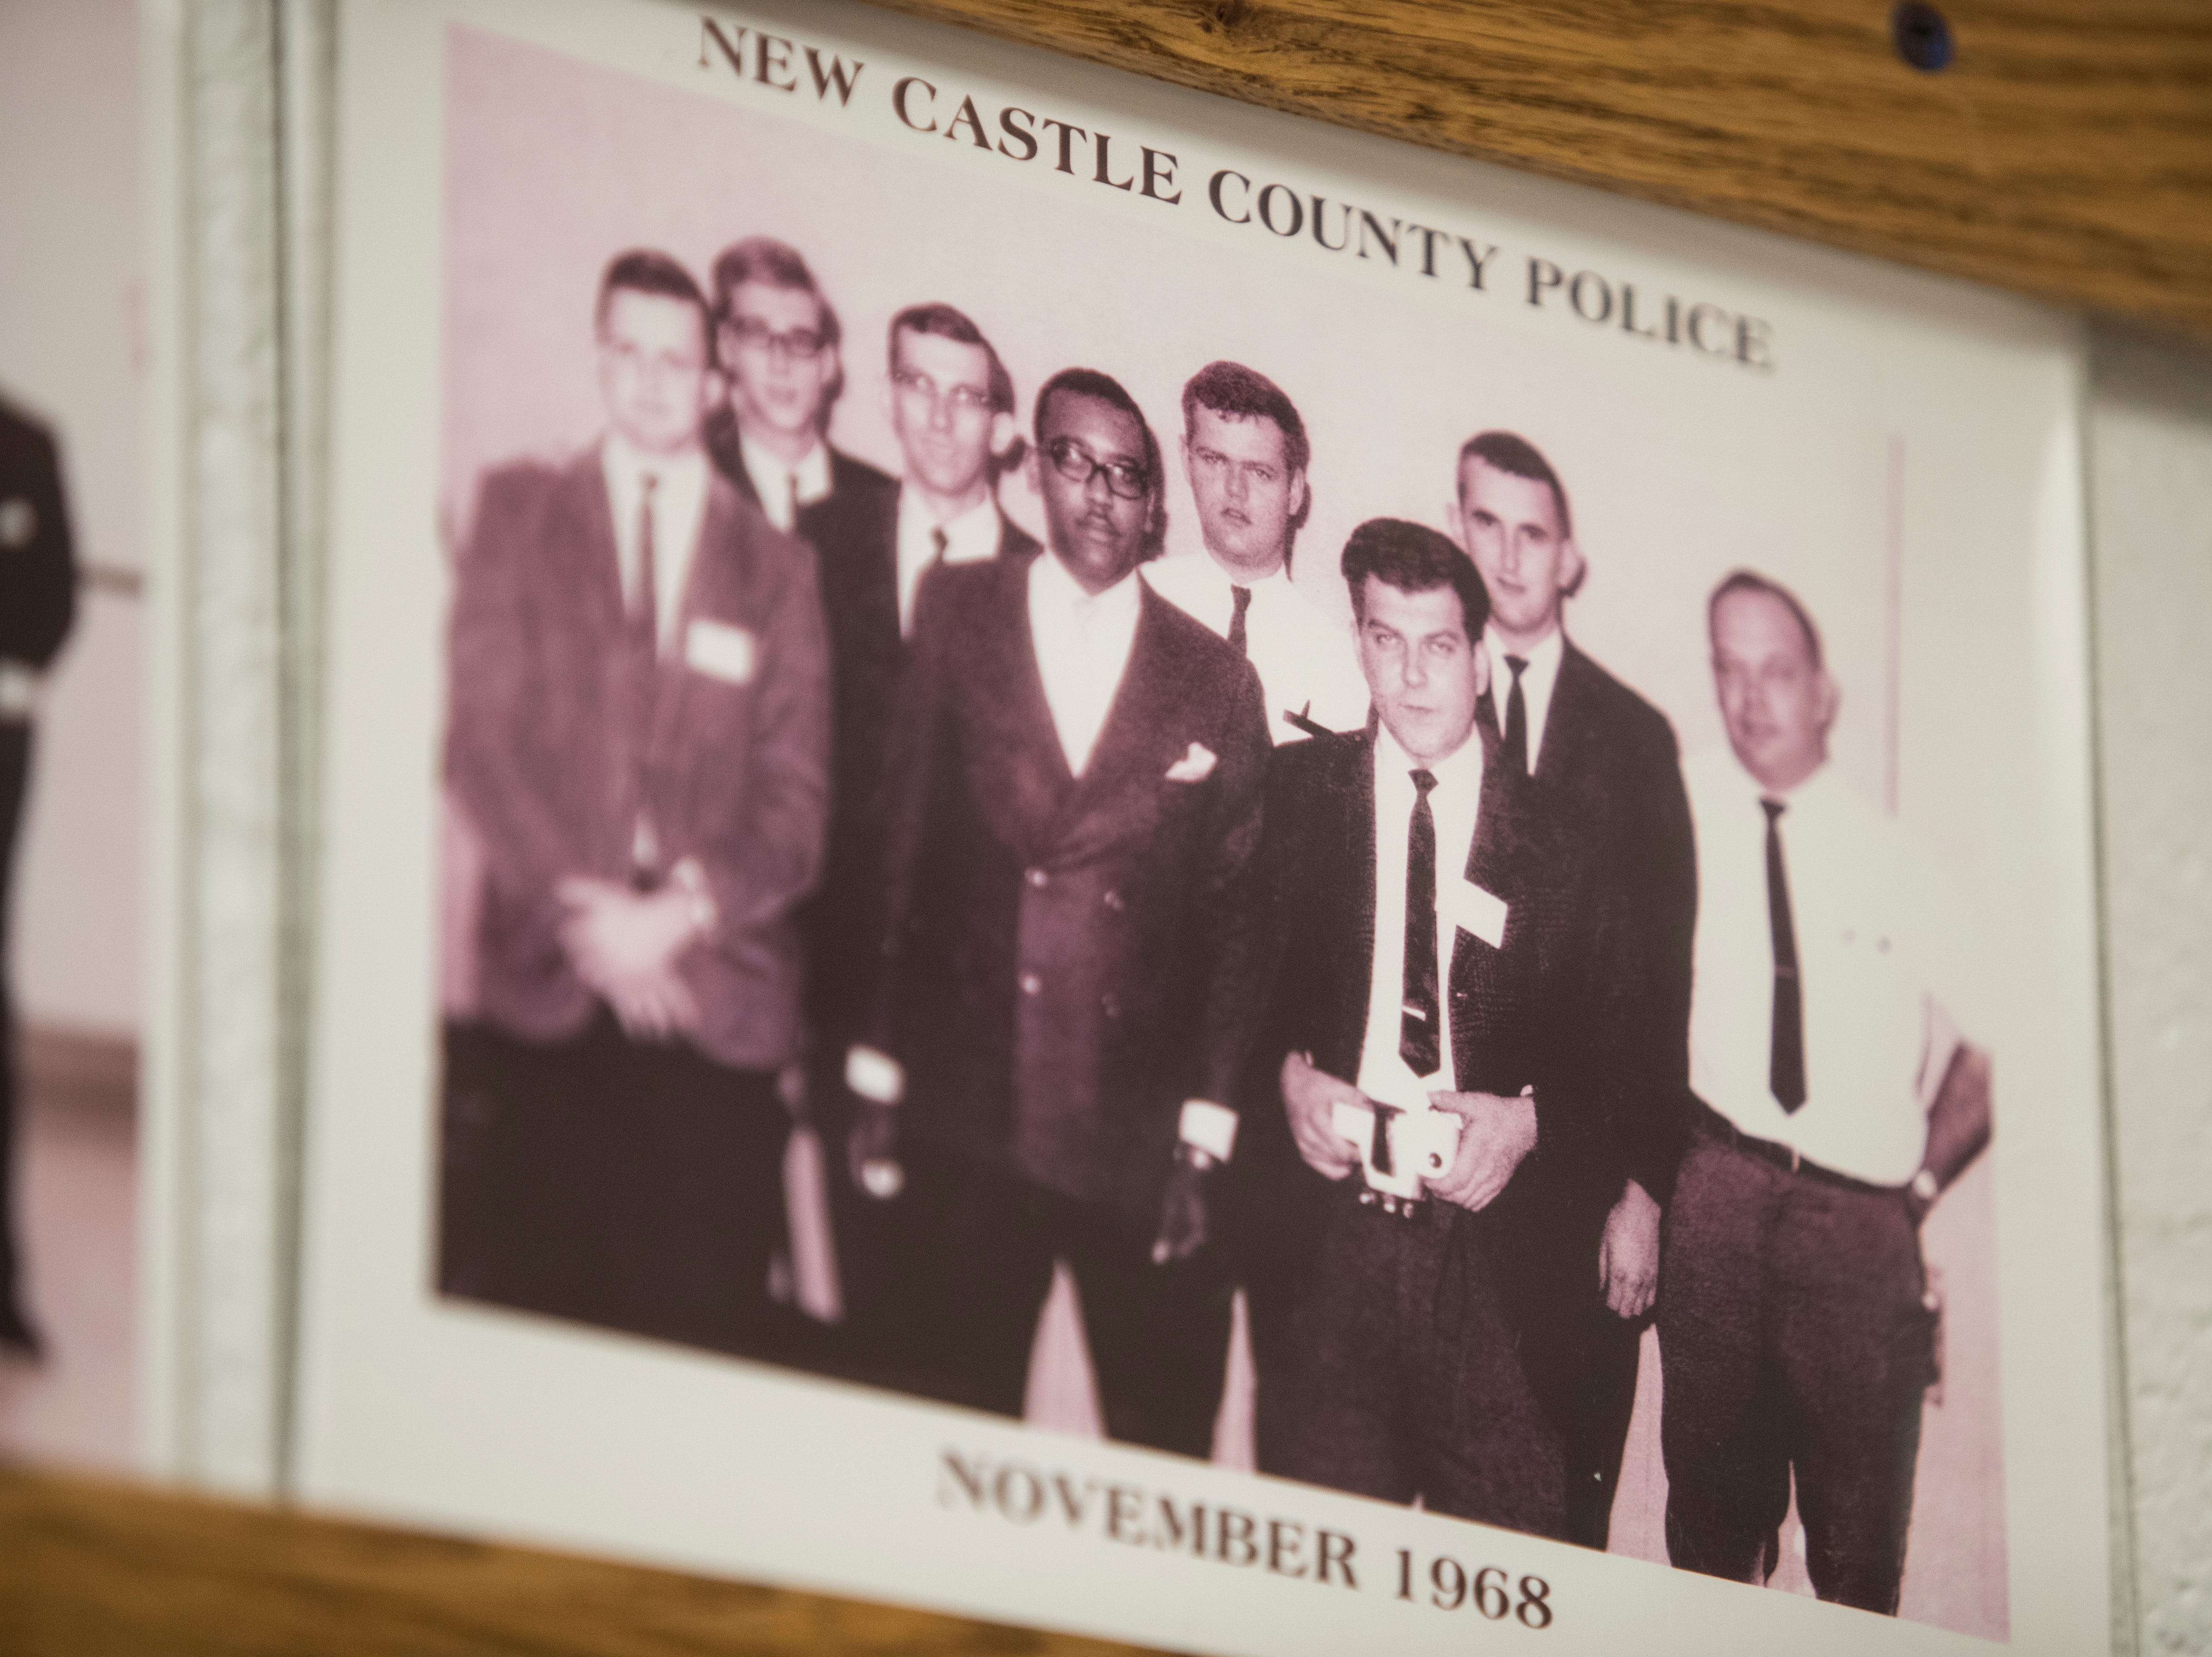 Photographs of past recruiting classes at the New Castle County Police Academy hang on the walls at the Lieutenant Joseph L. Szczerba Police Academy.